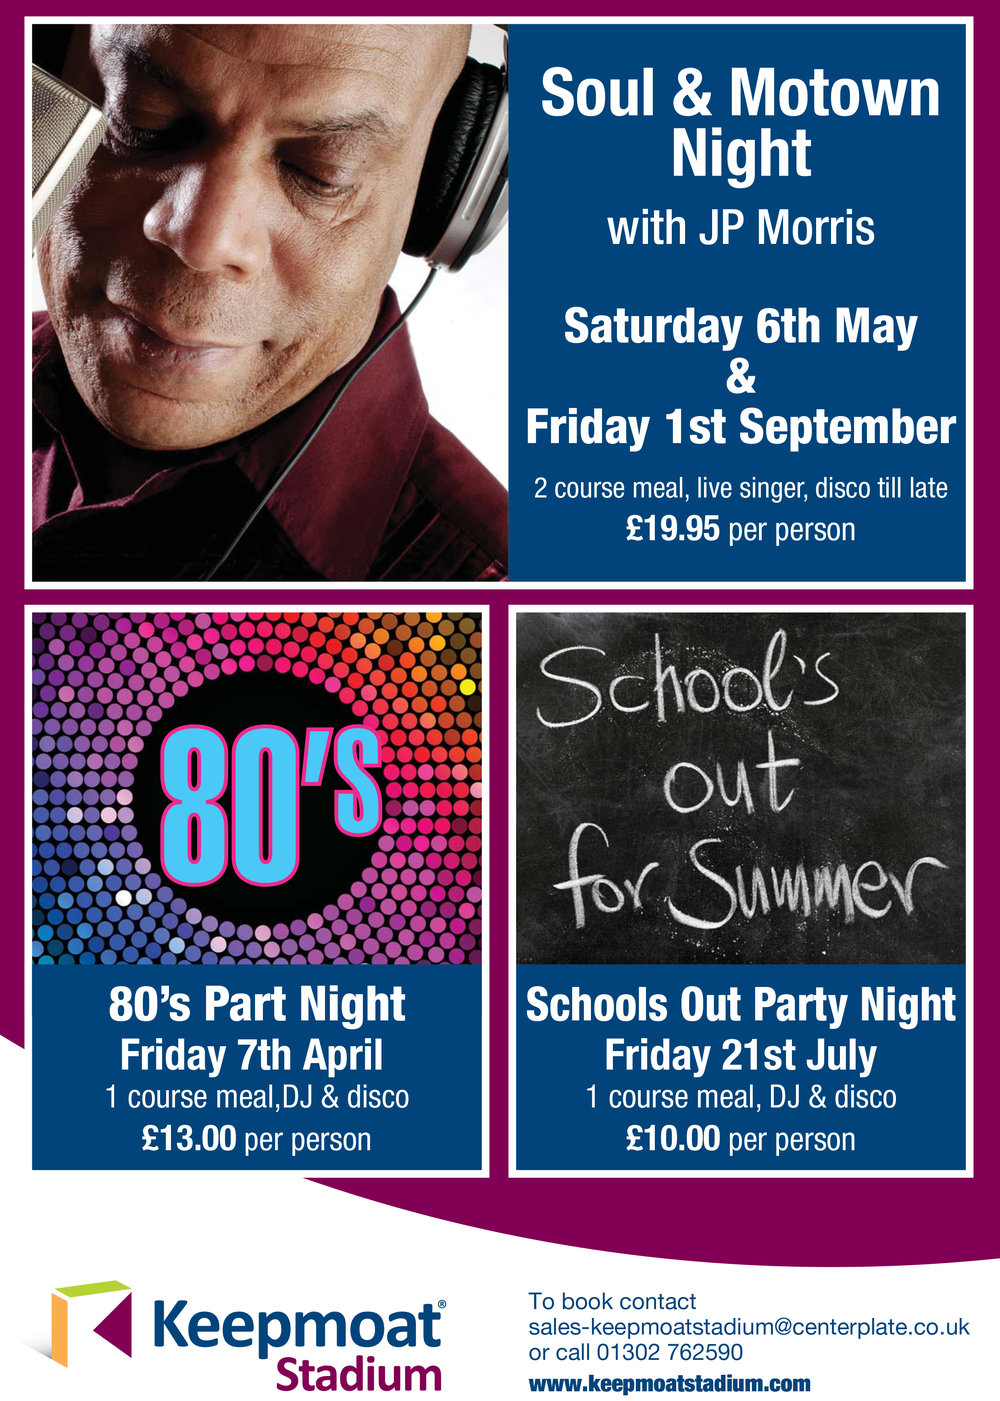 Party on at Keepmoat Stadium - Throughout the summer we are hosting some amazing party nights, inclusive of delicious food and great entertainment. Call us on 01302 762590 to book your place!